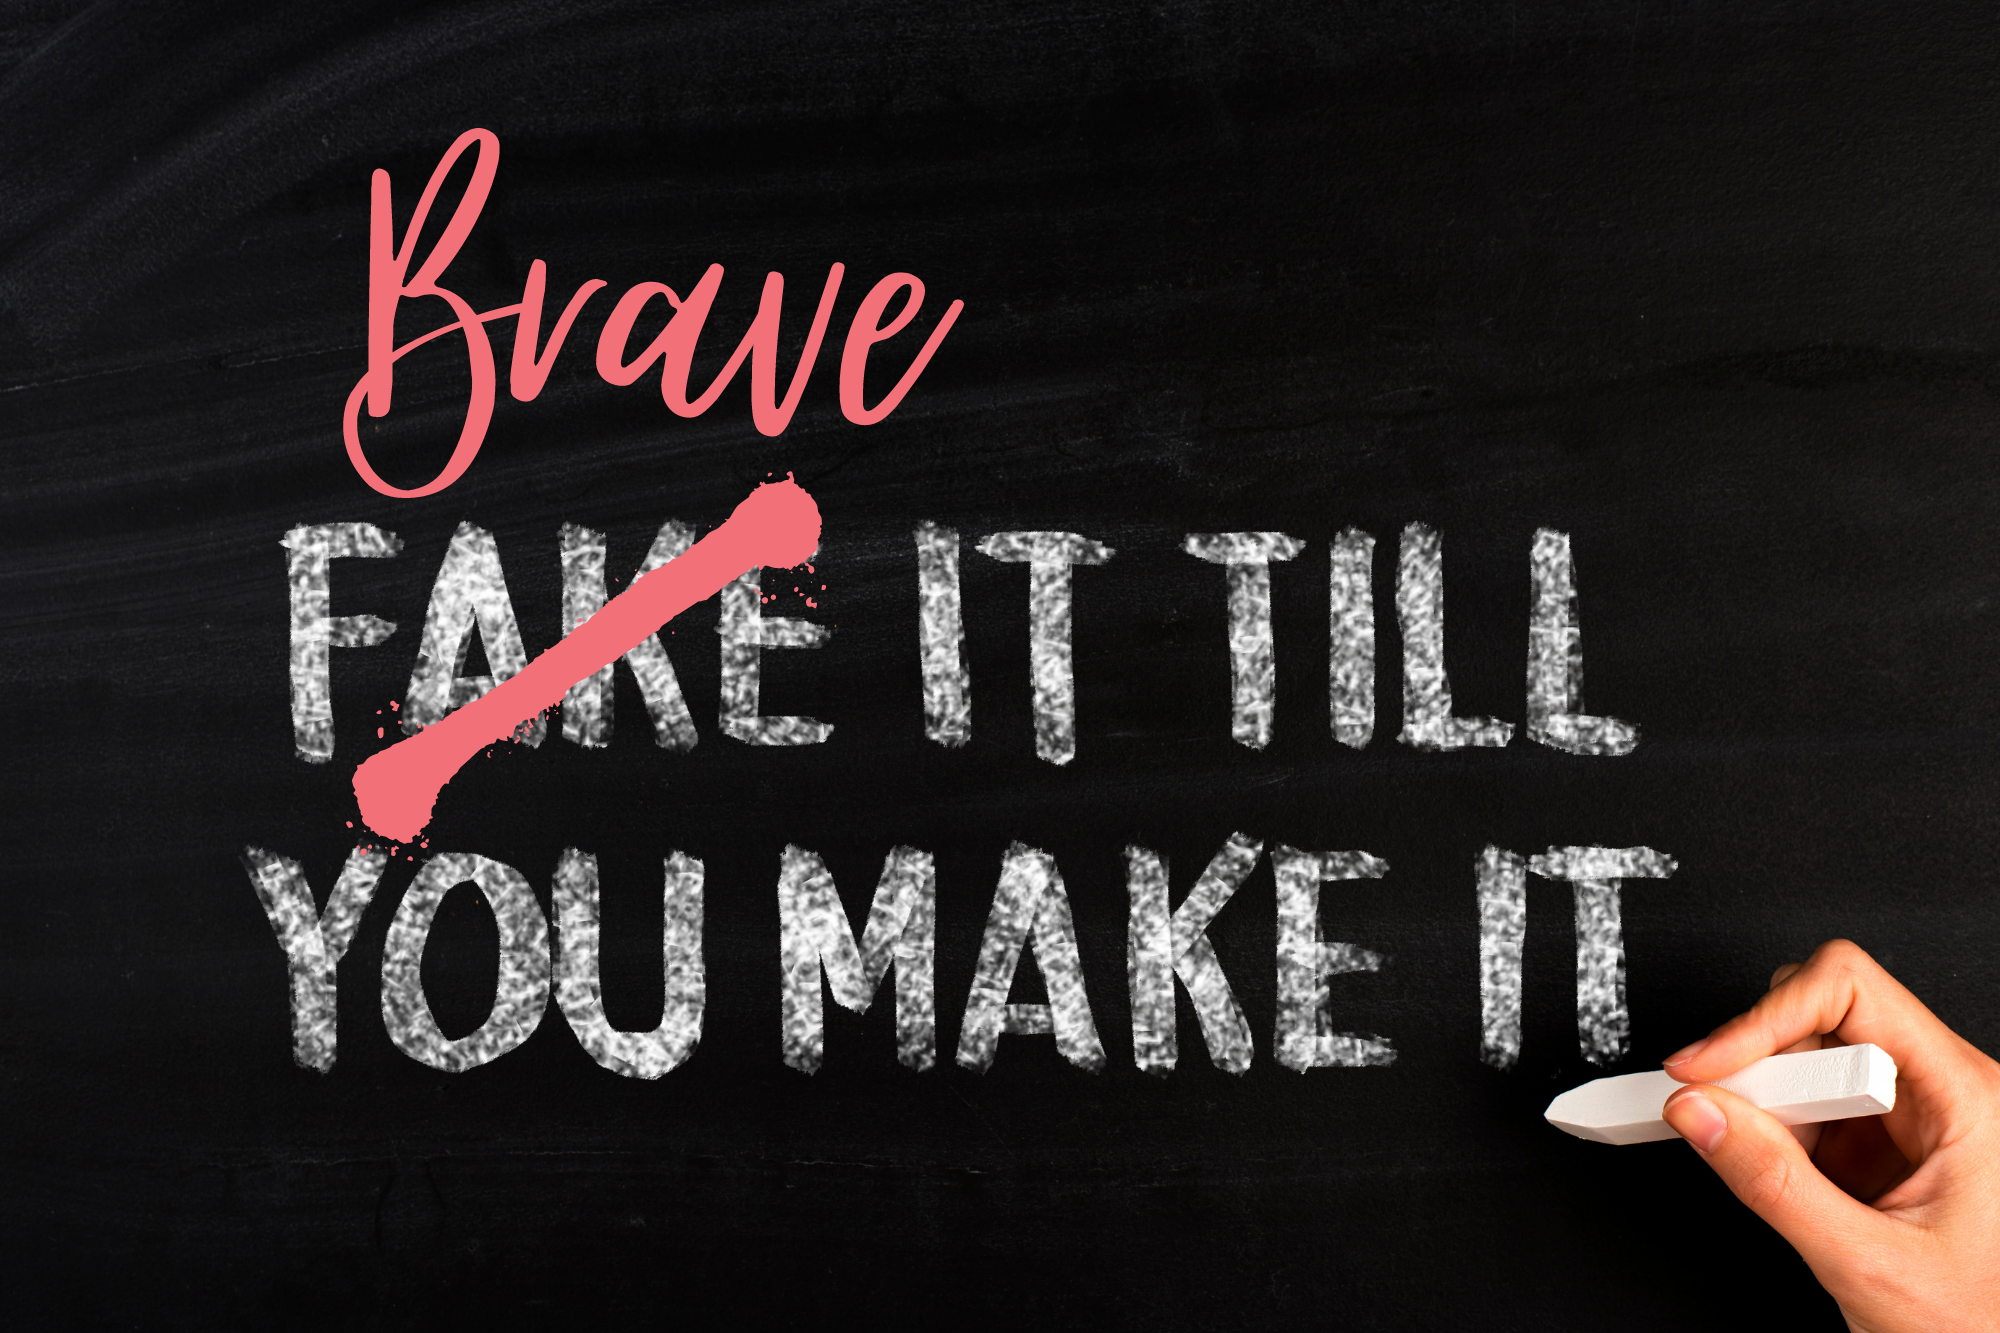 The words fake it till you make it written in chalk on a blackboard. The word fake is crossed out with the word Brave above, making it Brave it till you make it.